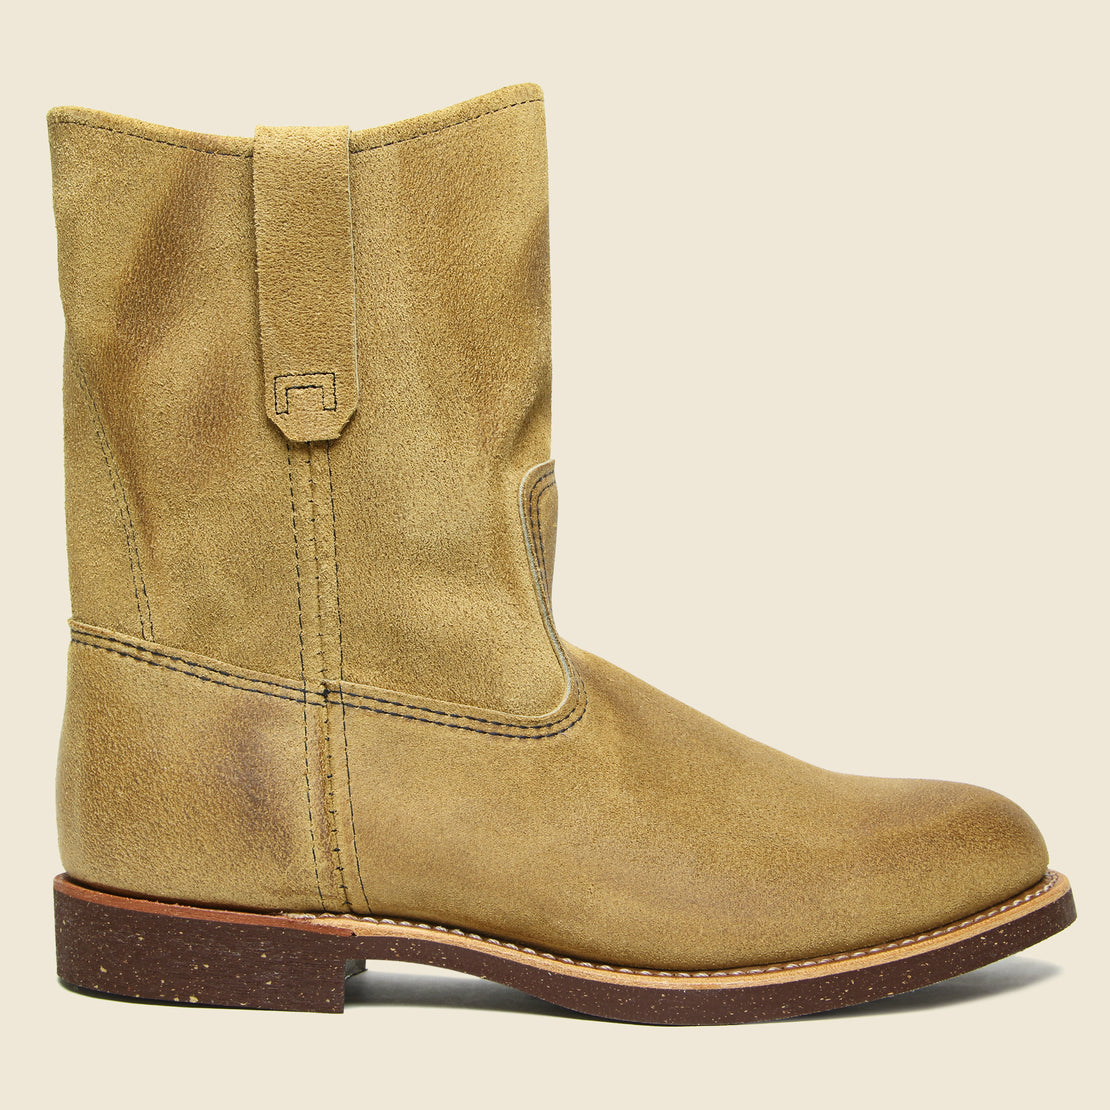 Red Wing Pecos Boot No. 8188 - Hawthorne